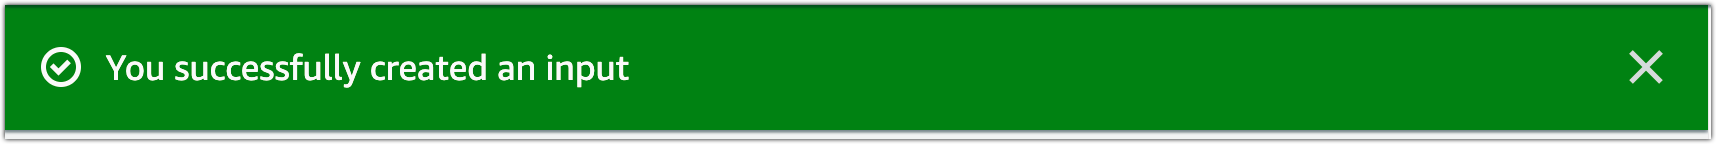 Success flashbar that indicates you have successfully created an input